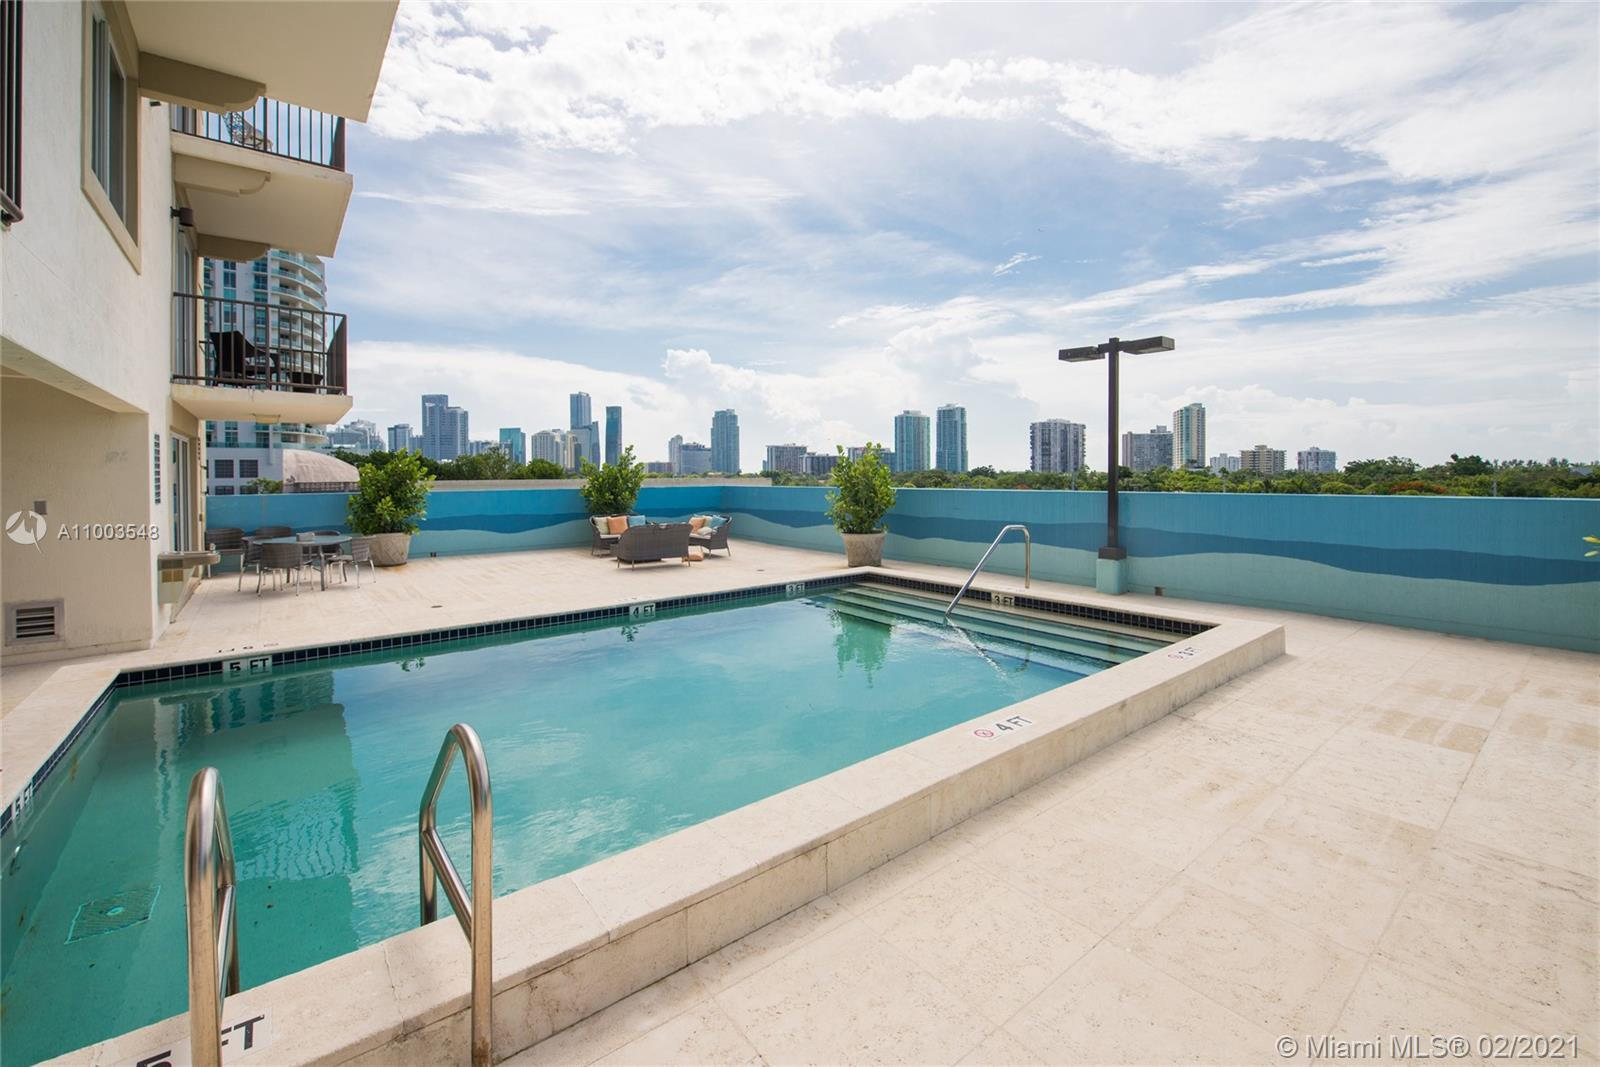 Live close to everything Miami has to offer: Brickell, downtown, Coconut Grove, Coral Gables, Key Bi